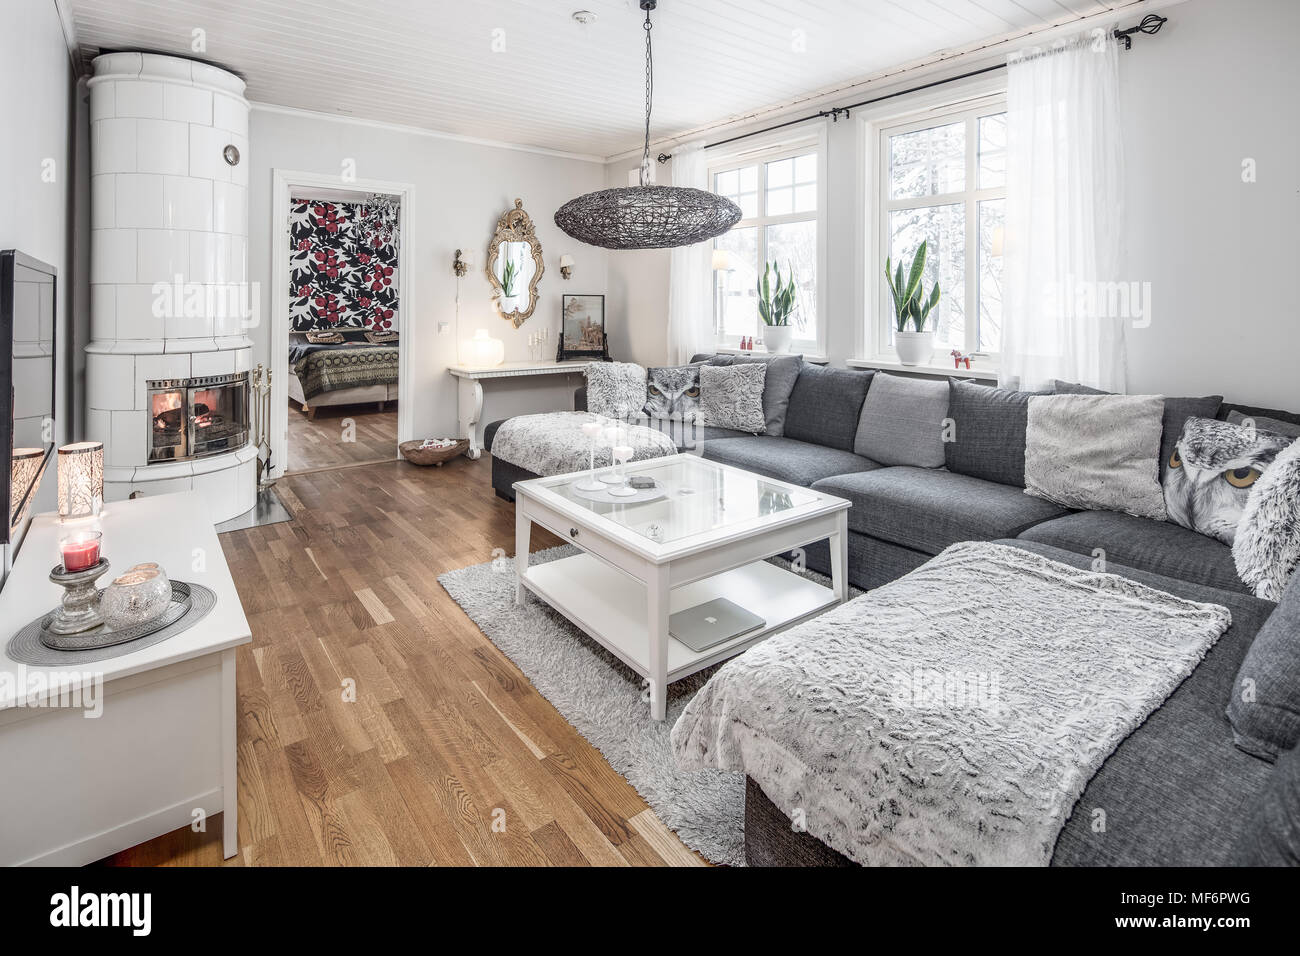 Contemporary Scandinavian Grey And White Living Room With A Hearth And A View To The Bedroom Stock Photo Alamy